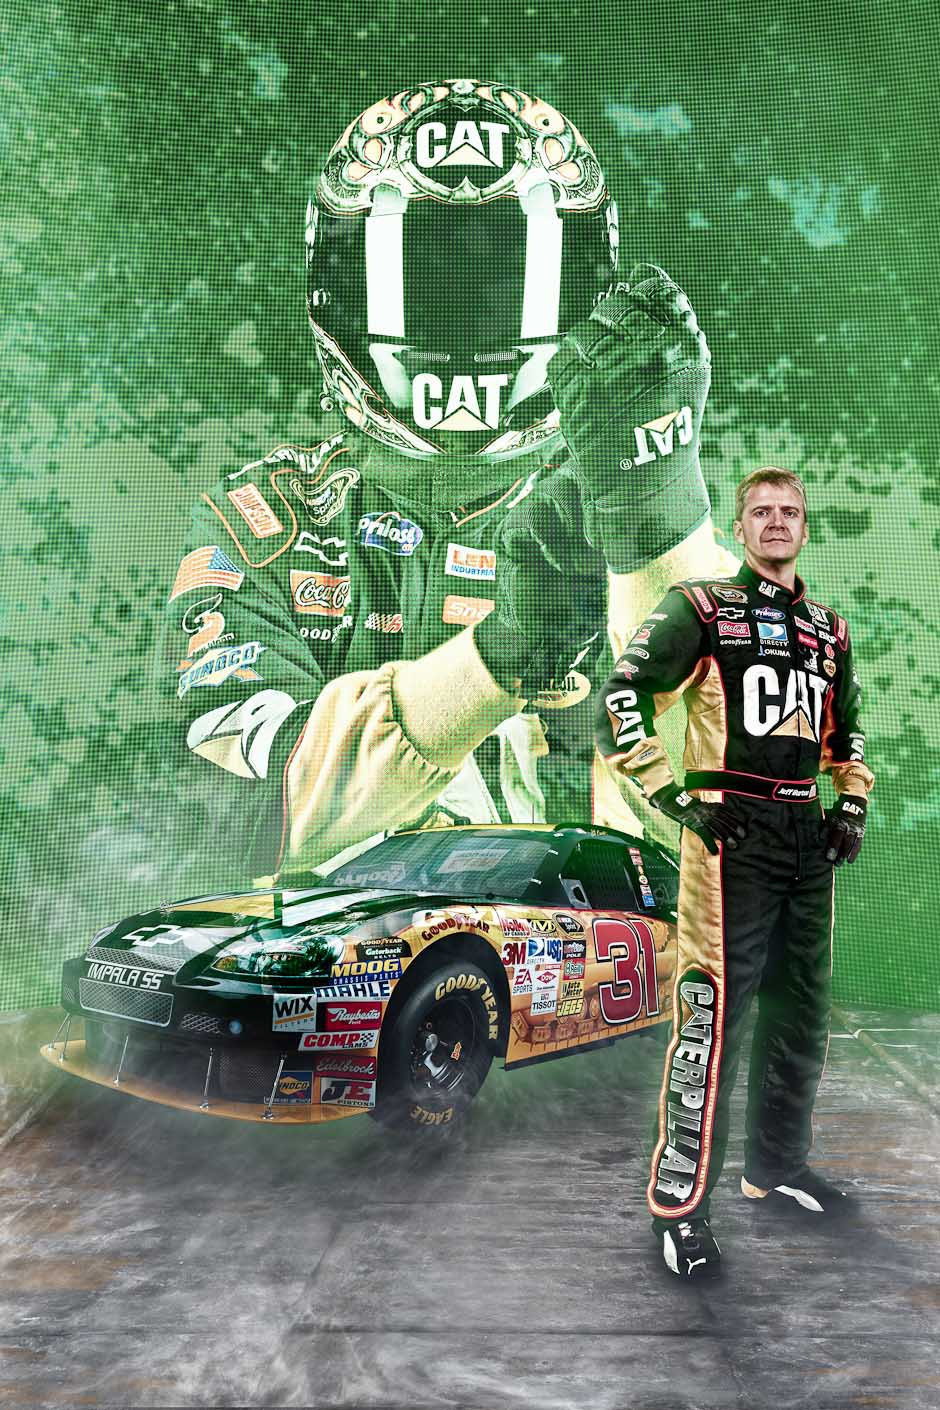 Racecar-Driver-Jeff Burton-Nascar-Photoshop-Photo-Manipulation